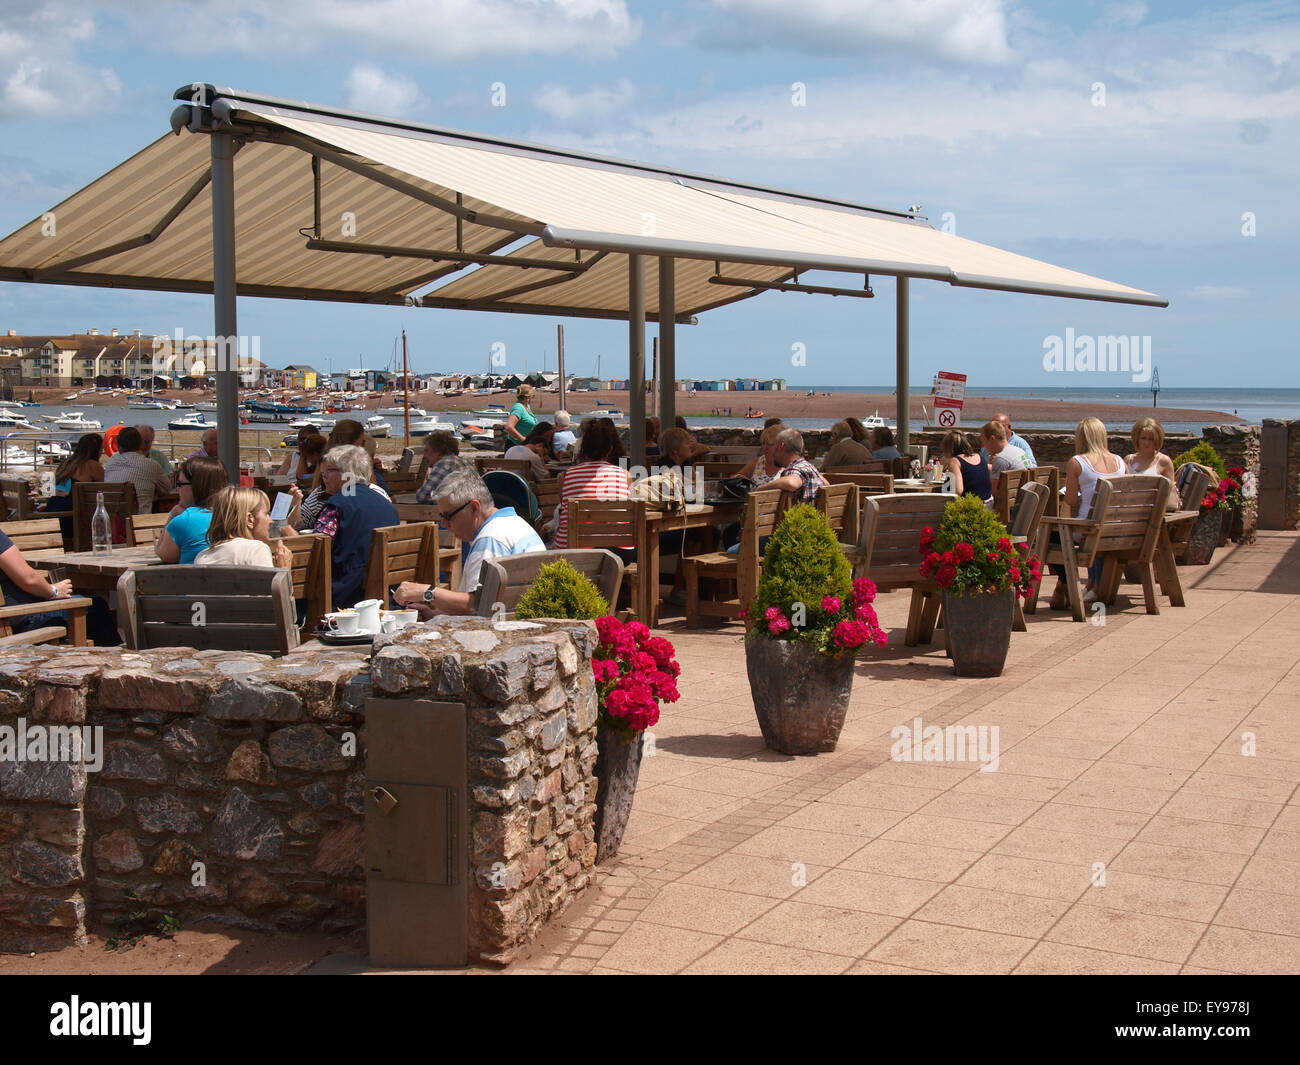 Outside eating area of the Clipper Café overlooking the Teign Estuary, Shaldon, Devon, UK - Stock Image